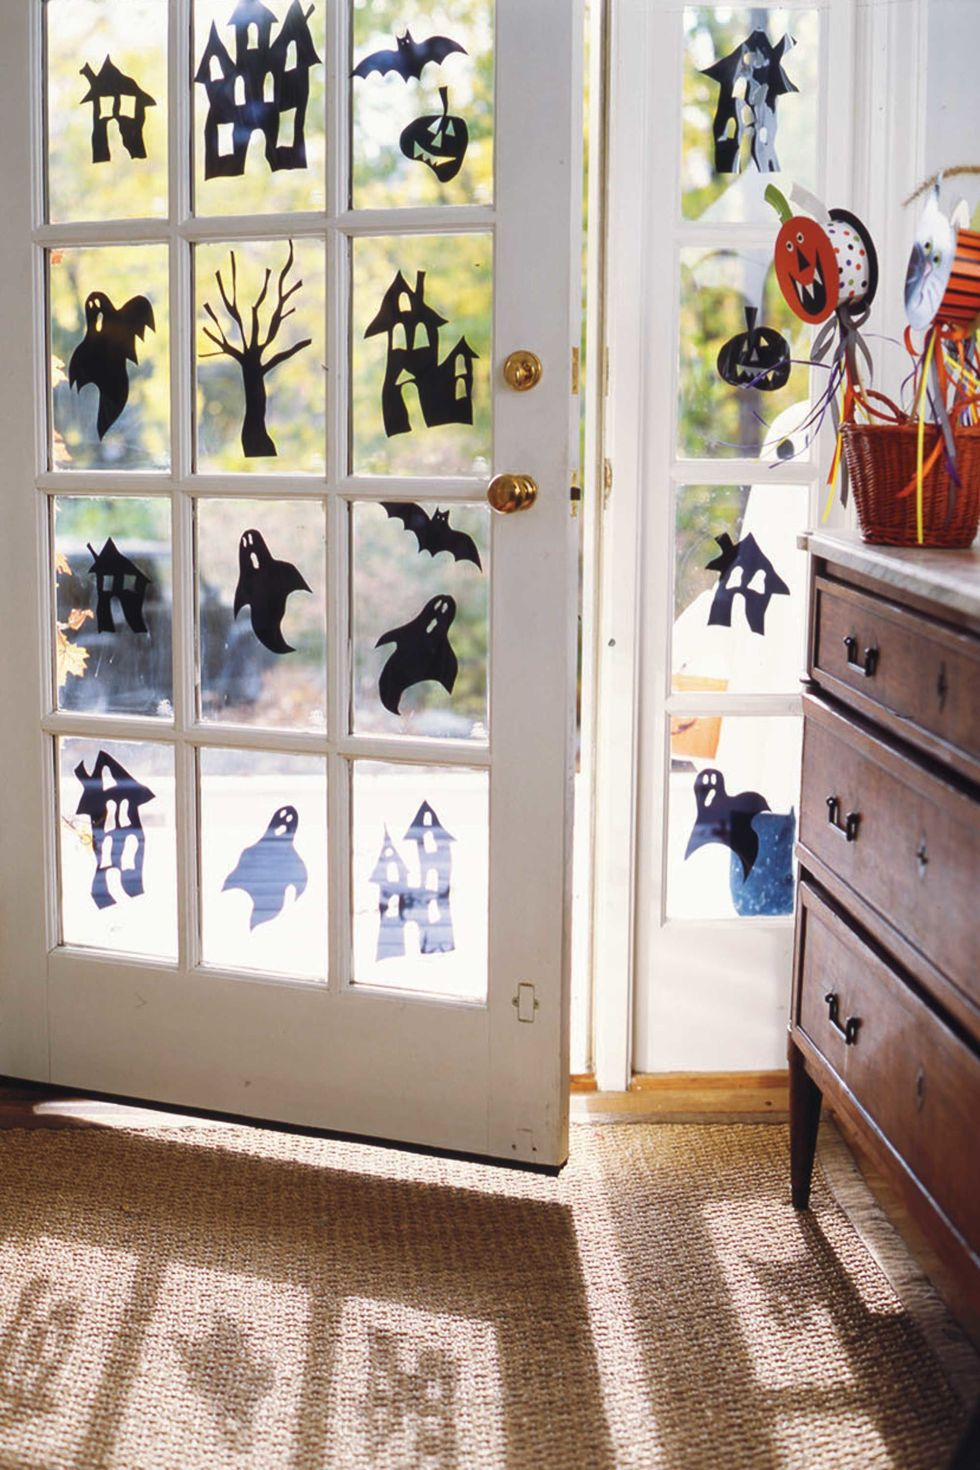 50 easy halloween decorations spooky home decor ideas for halloween - Ideas For Decorating For Halloween